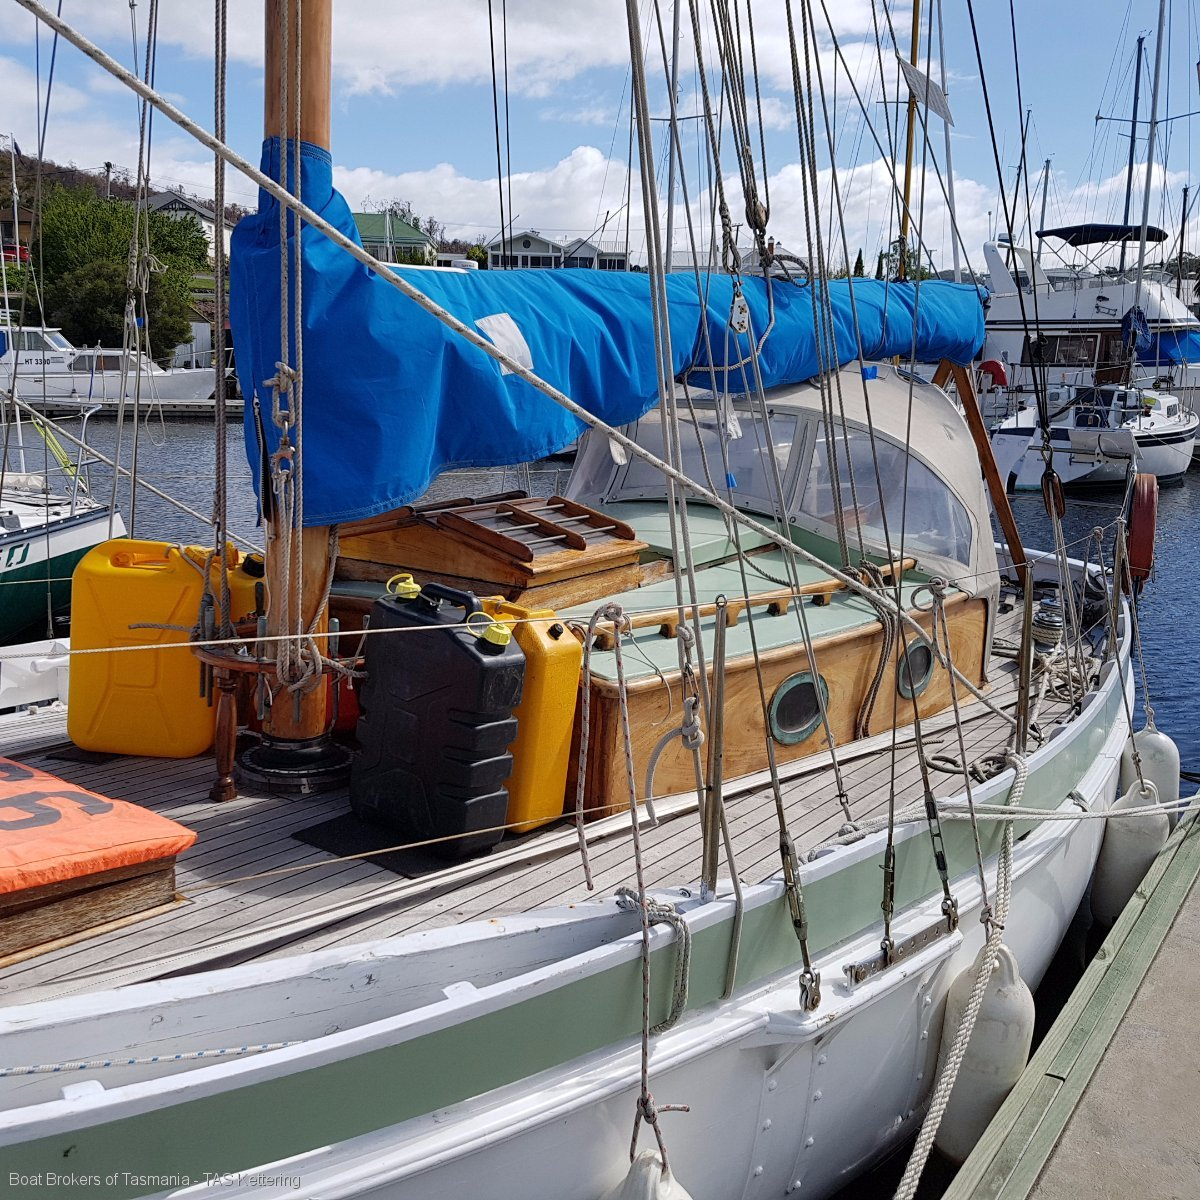 Heather-Belle Lyle Hess Bristol Pilot Cutter Boat Brokers of Tasmania